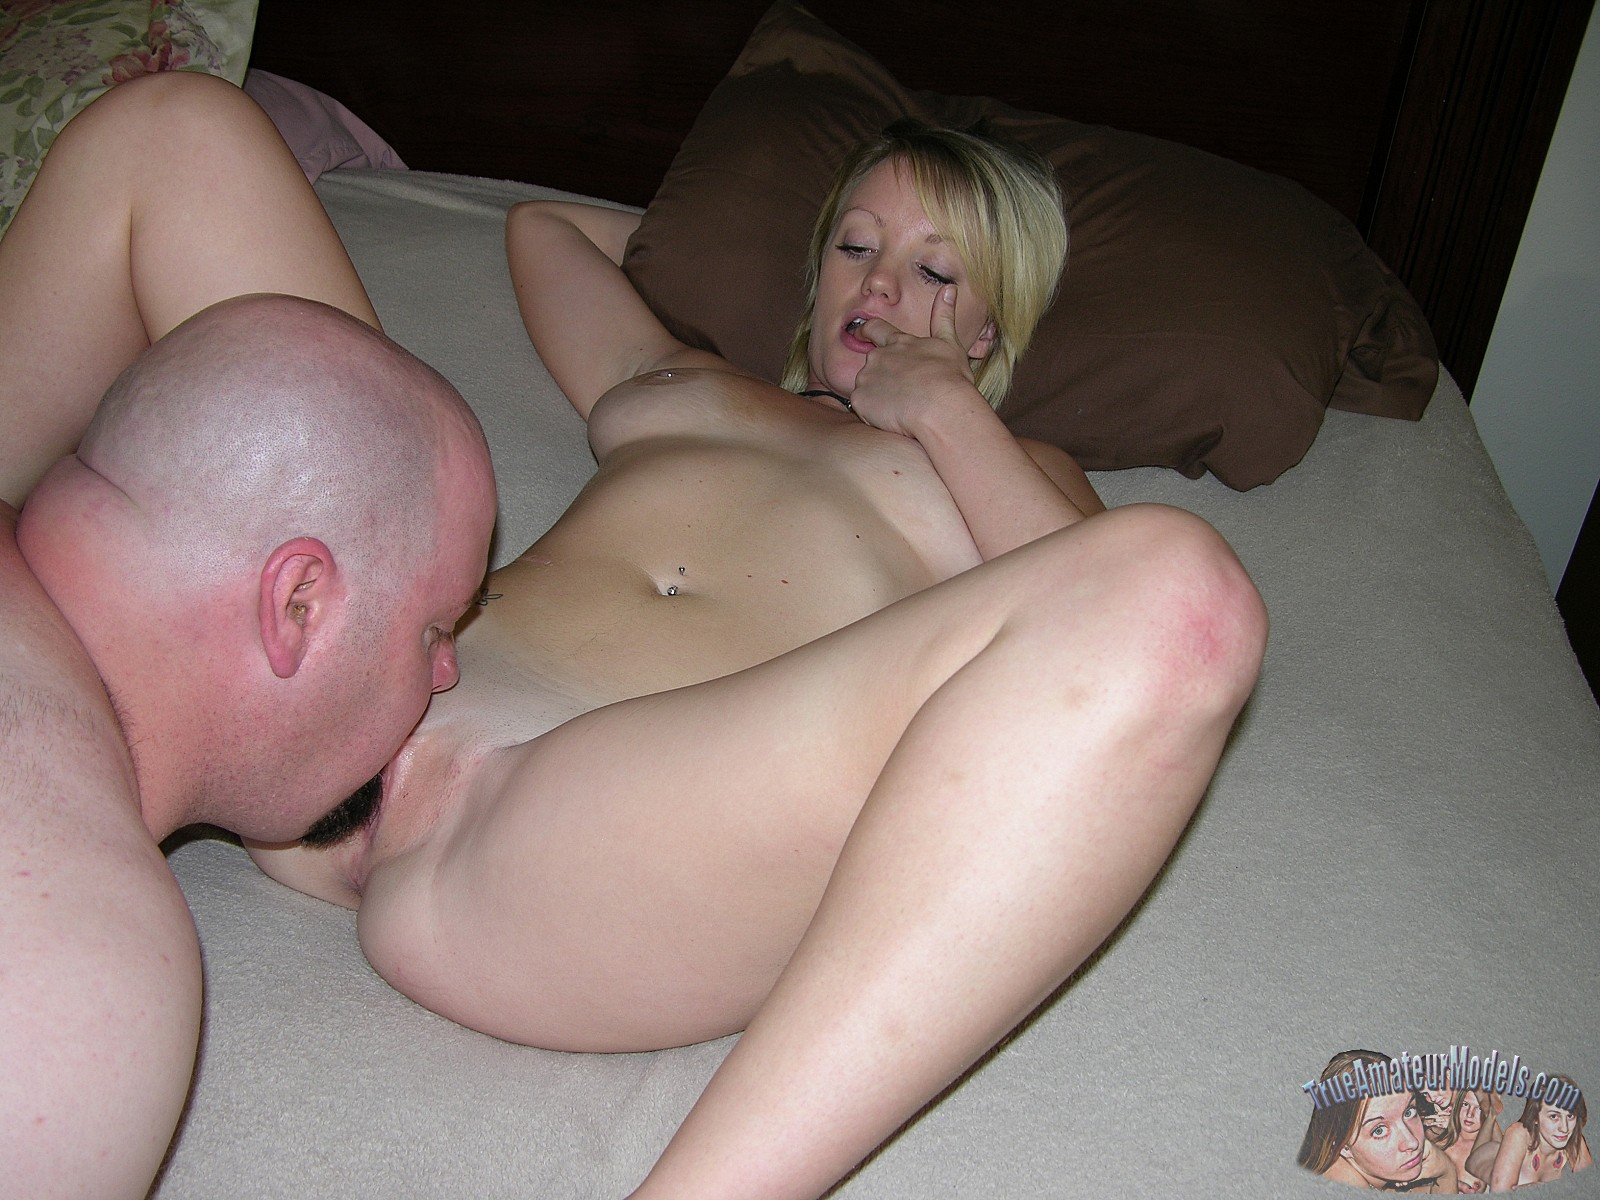 Amateur Wife Blonde Sharing